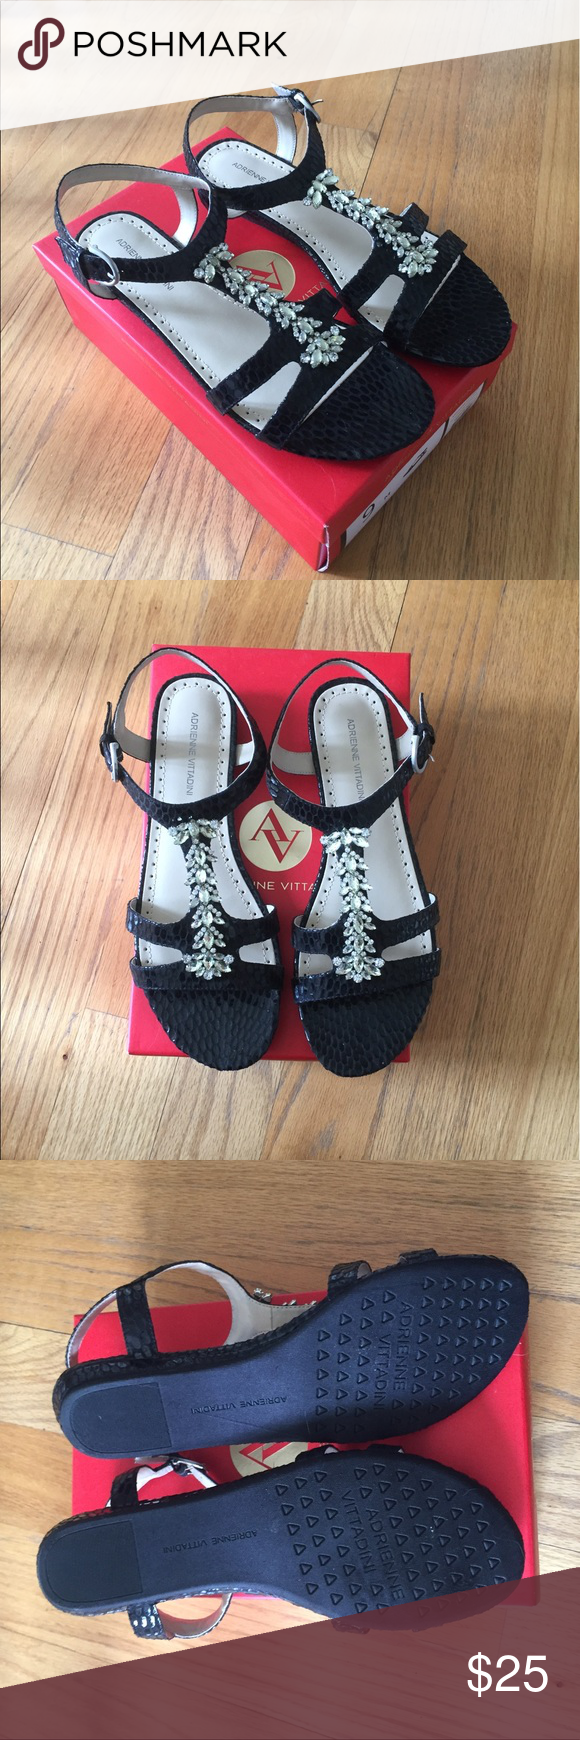 Jewelled Sandals Black snake skin like Sandals with jewel detail. Size 9. New with box. Strap around ankle is adjustable. Shoes Sandals